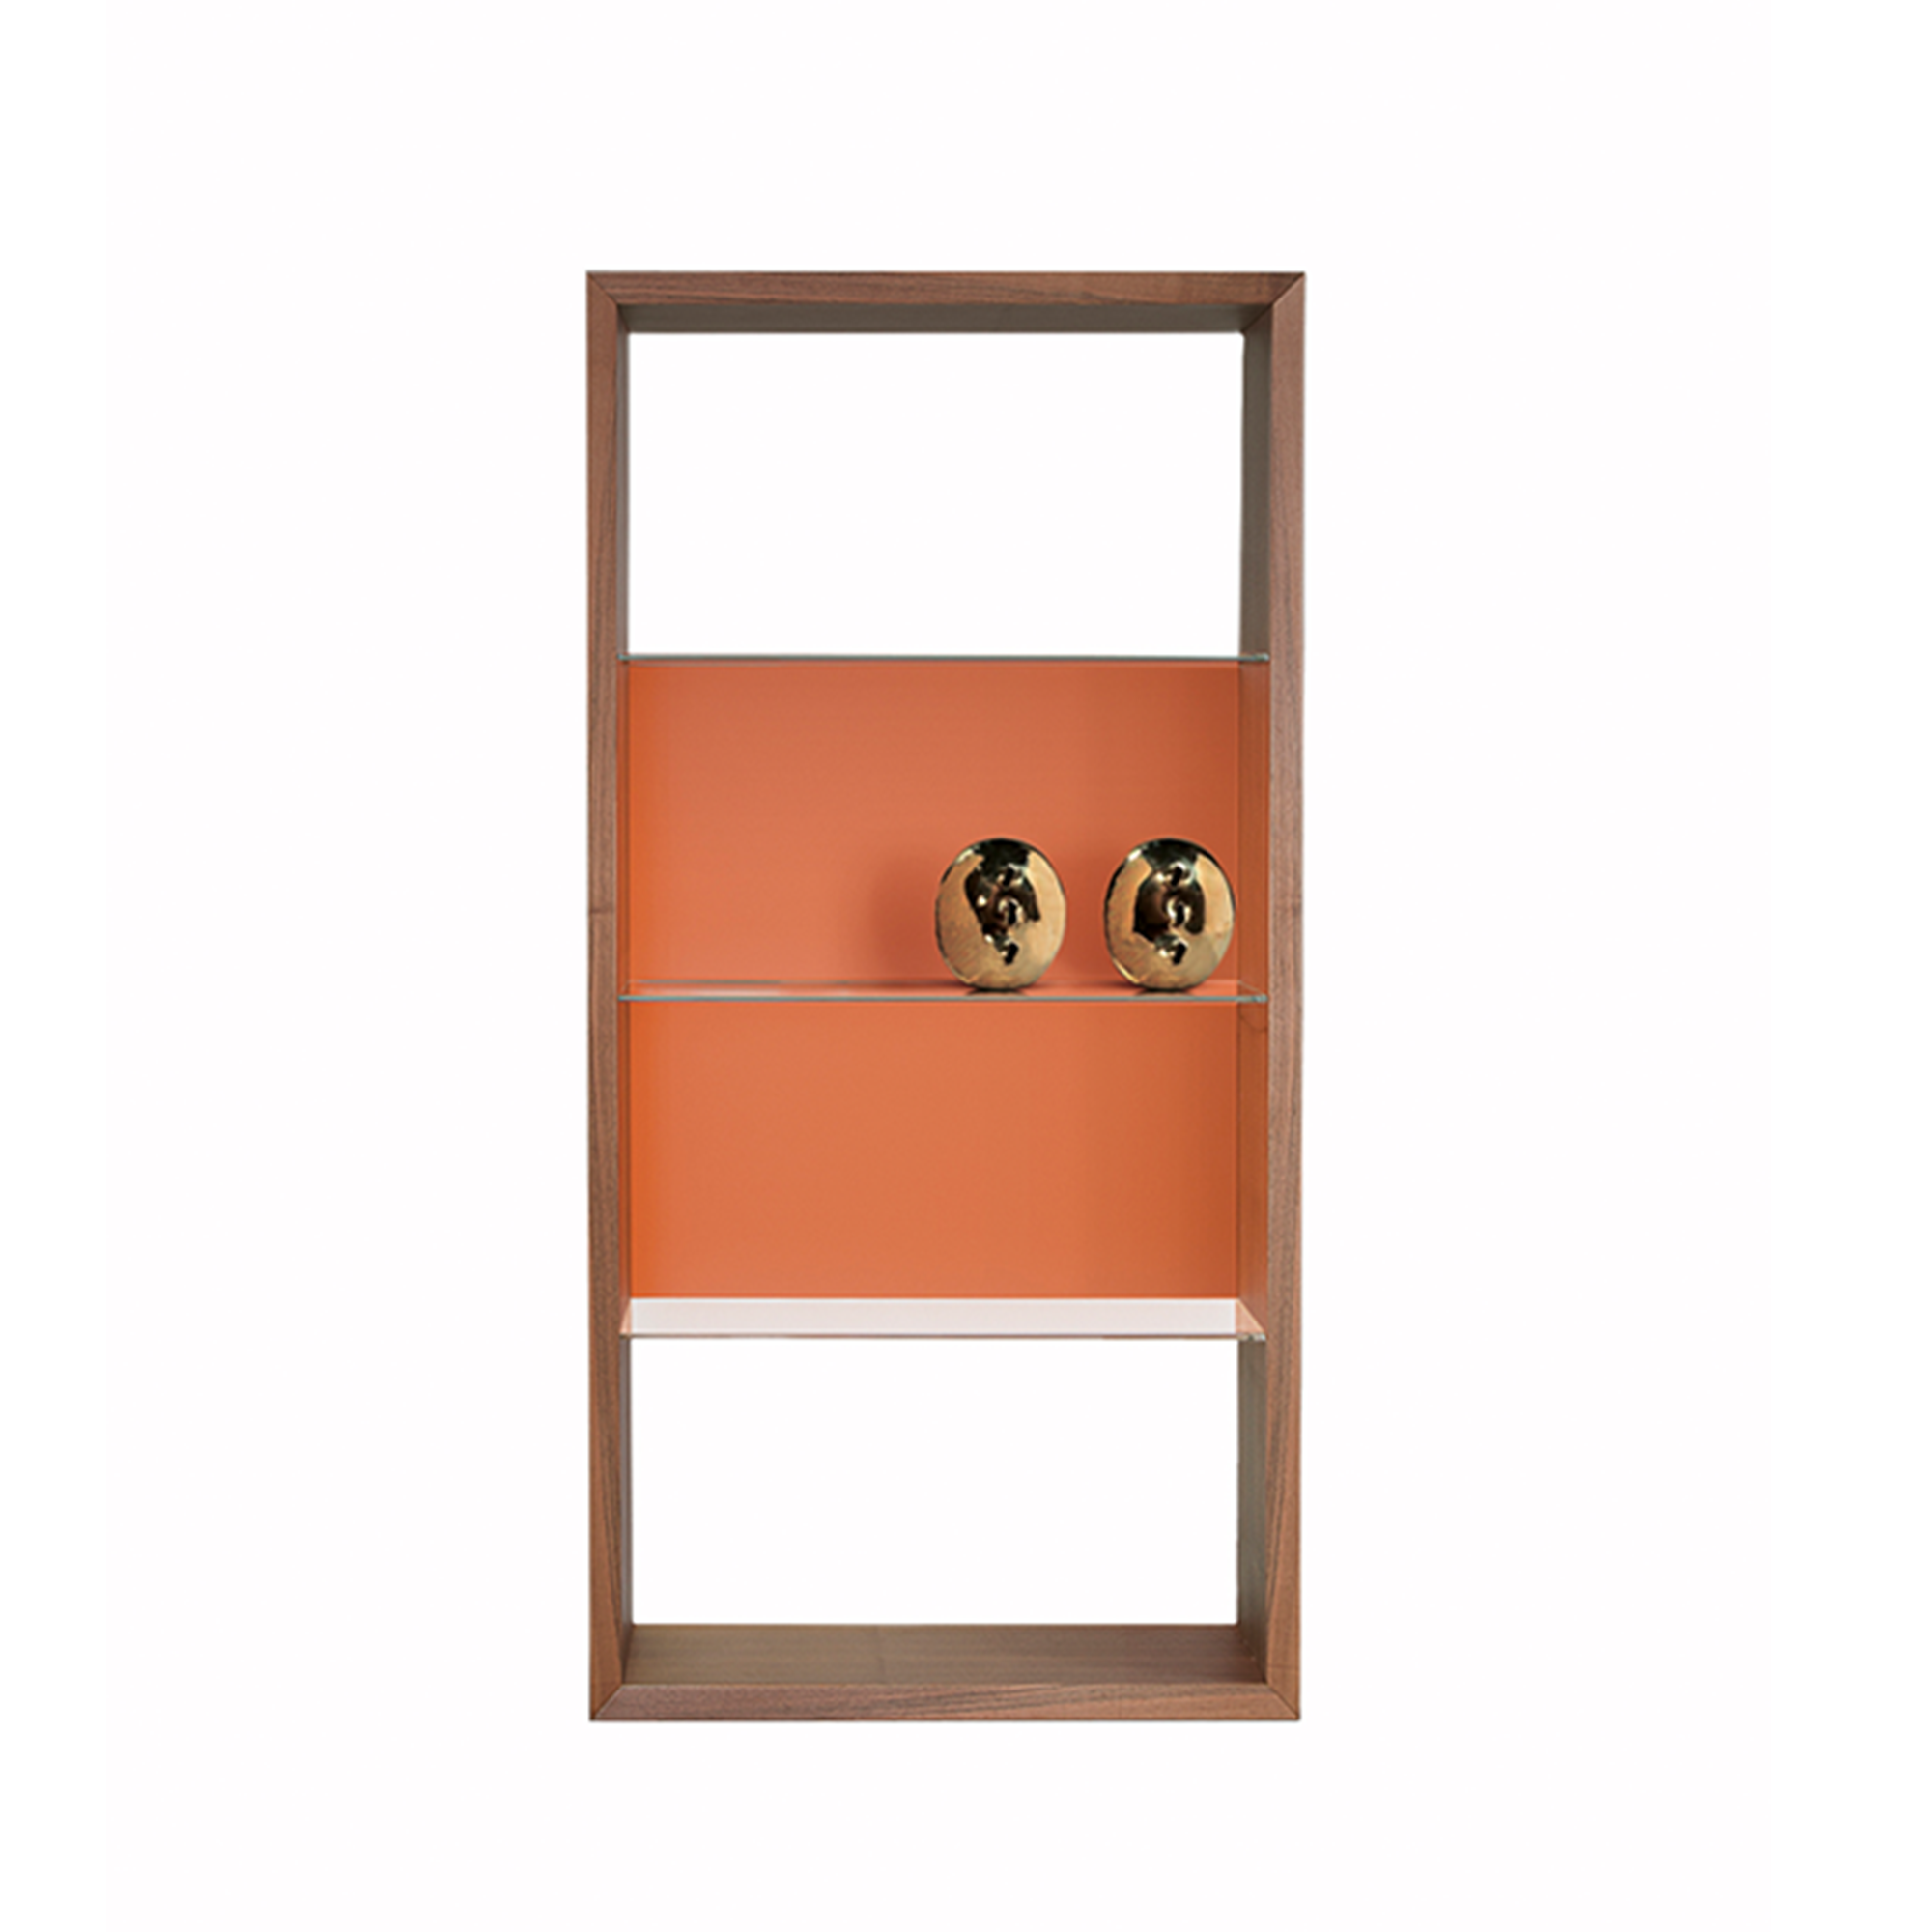 Wood and glass bookshelf. Made in Italy. Orange